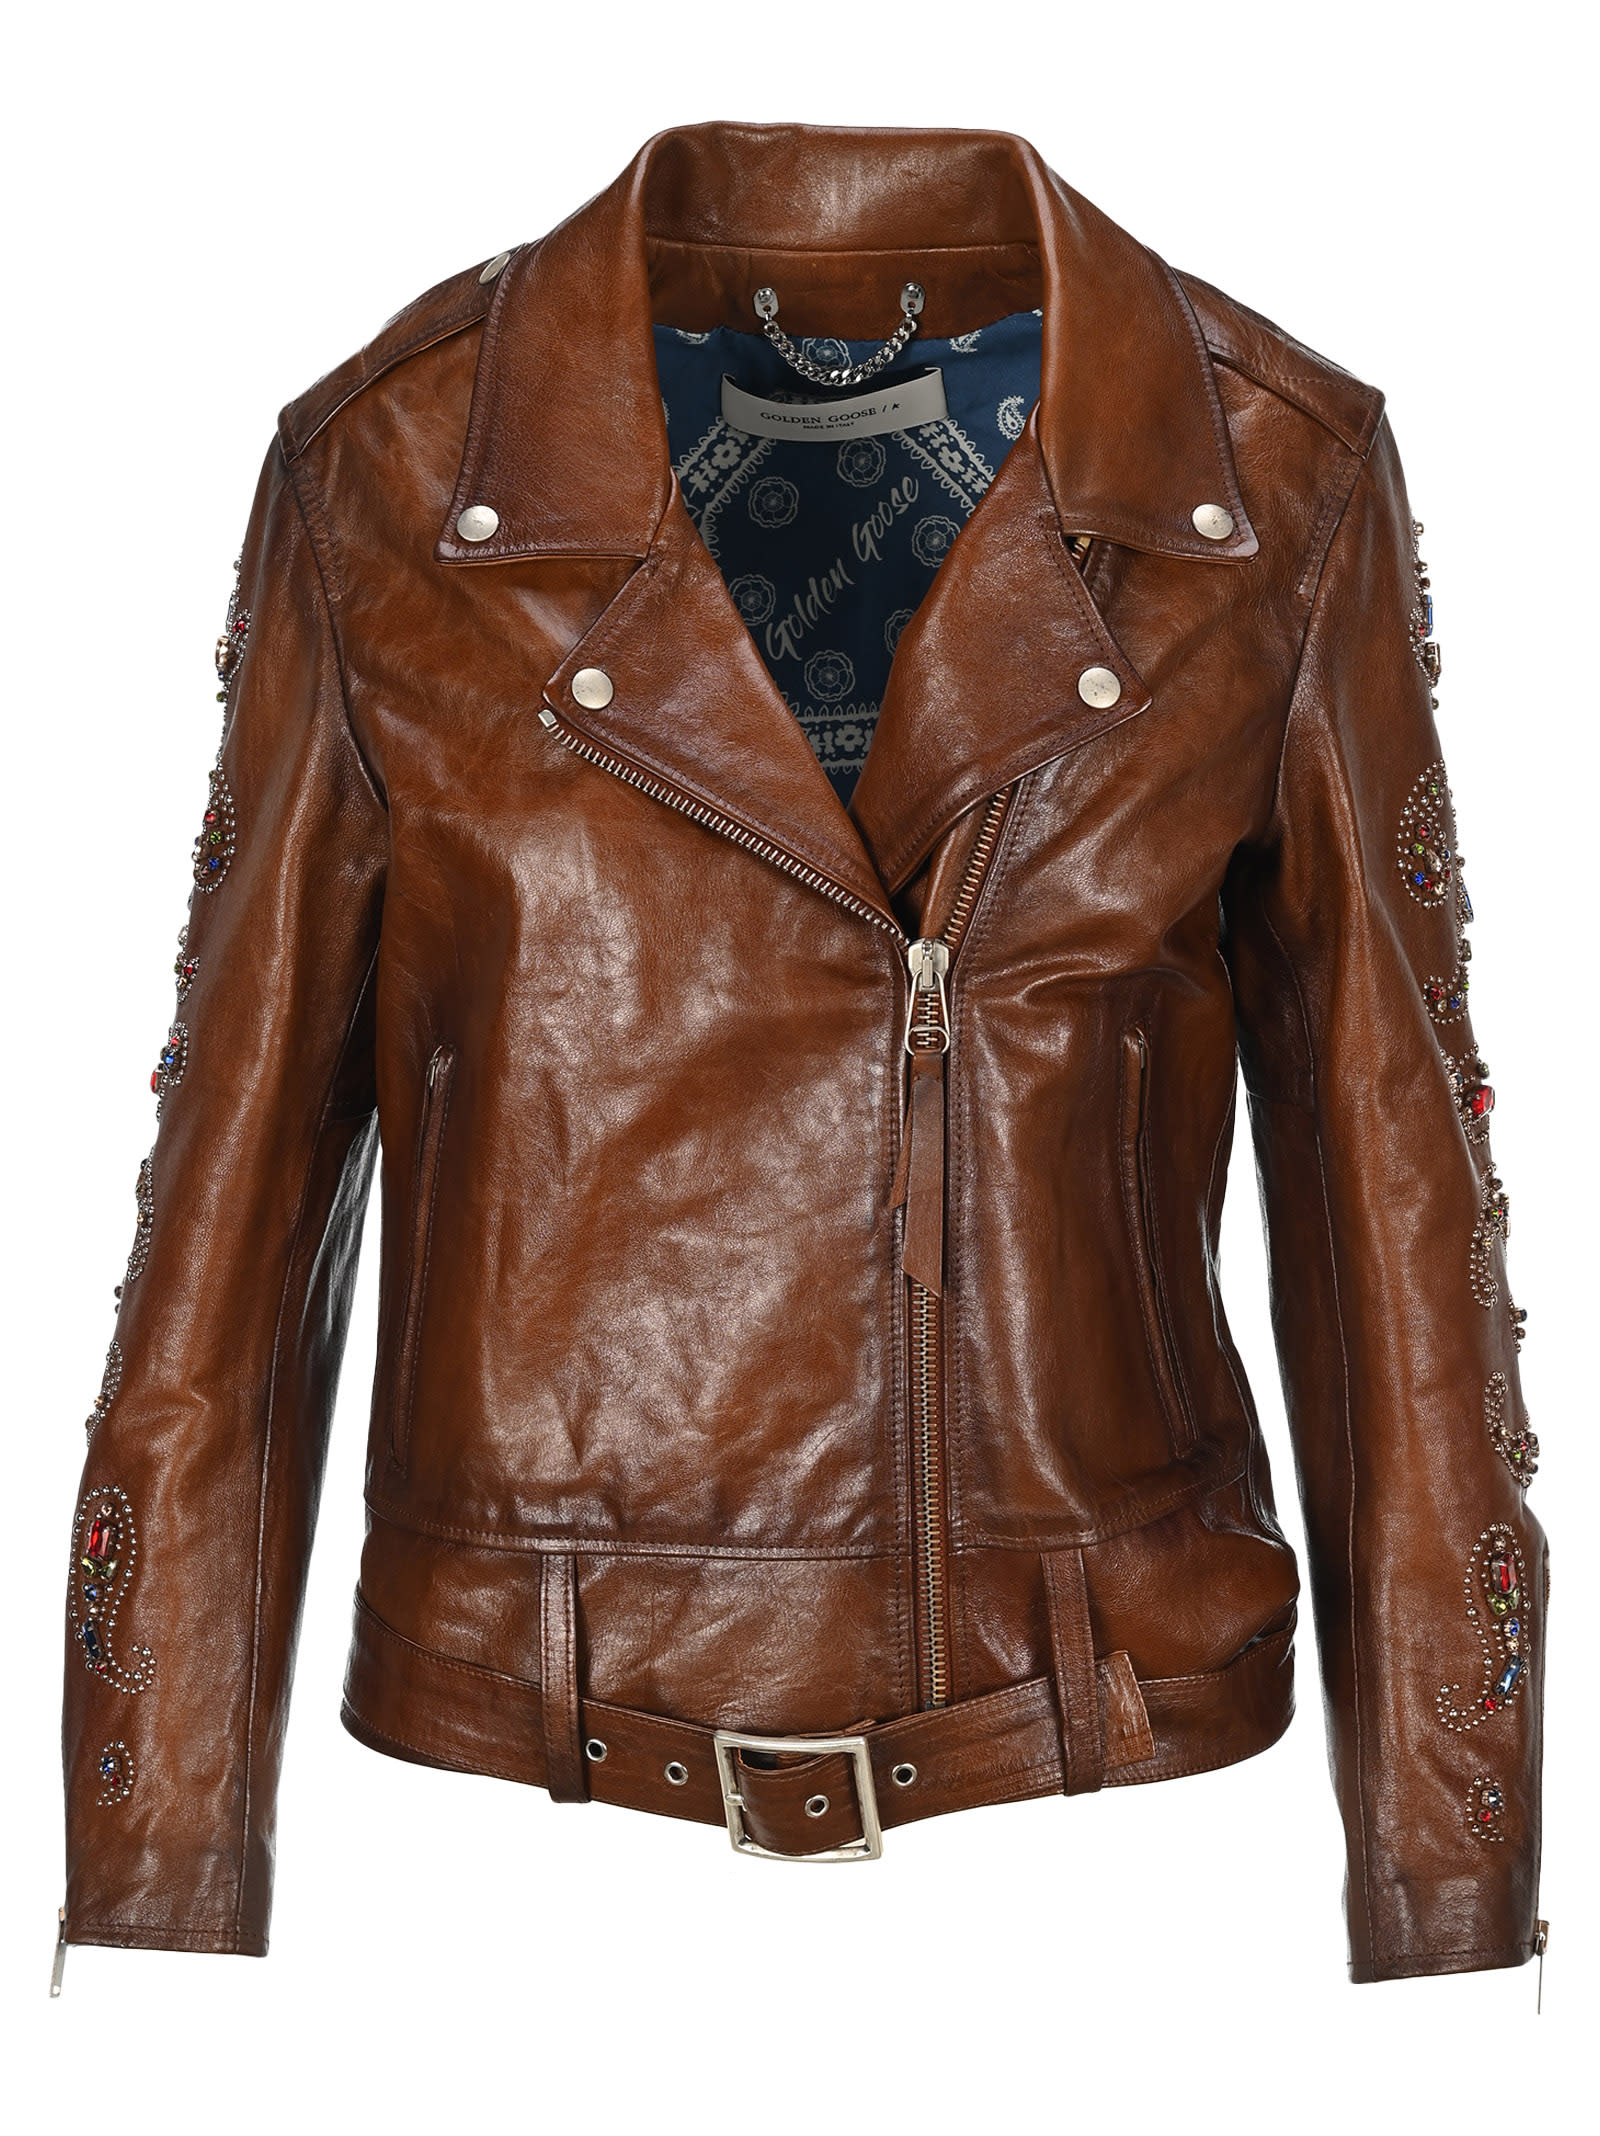 Dark Brown Leather Victoria Biker Jacket. Featuring: - Notched Lapels; - Off-centre Front Zip Fastening; - Side Zip Pockets; - Belted Hem; - Long Sleeves With Crystal And Stud Embellishments In A Paisley Pattern. Composition: 100% OVINE LEATHER - LINING:, 100% COTTON